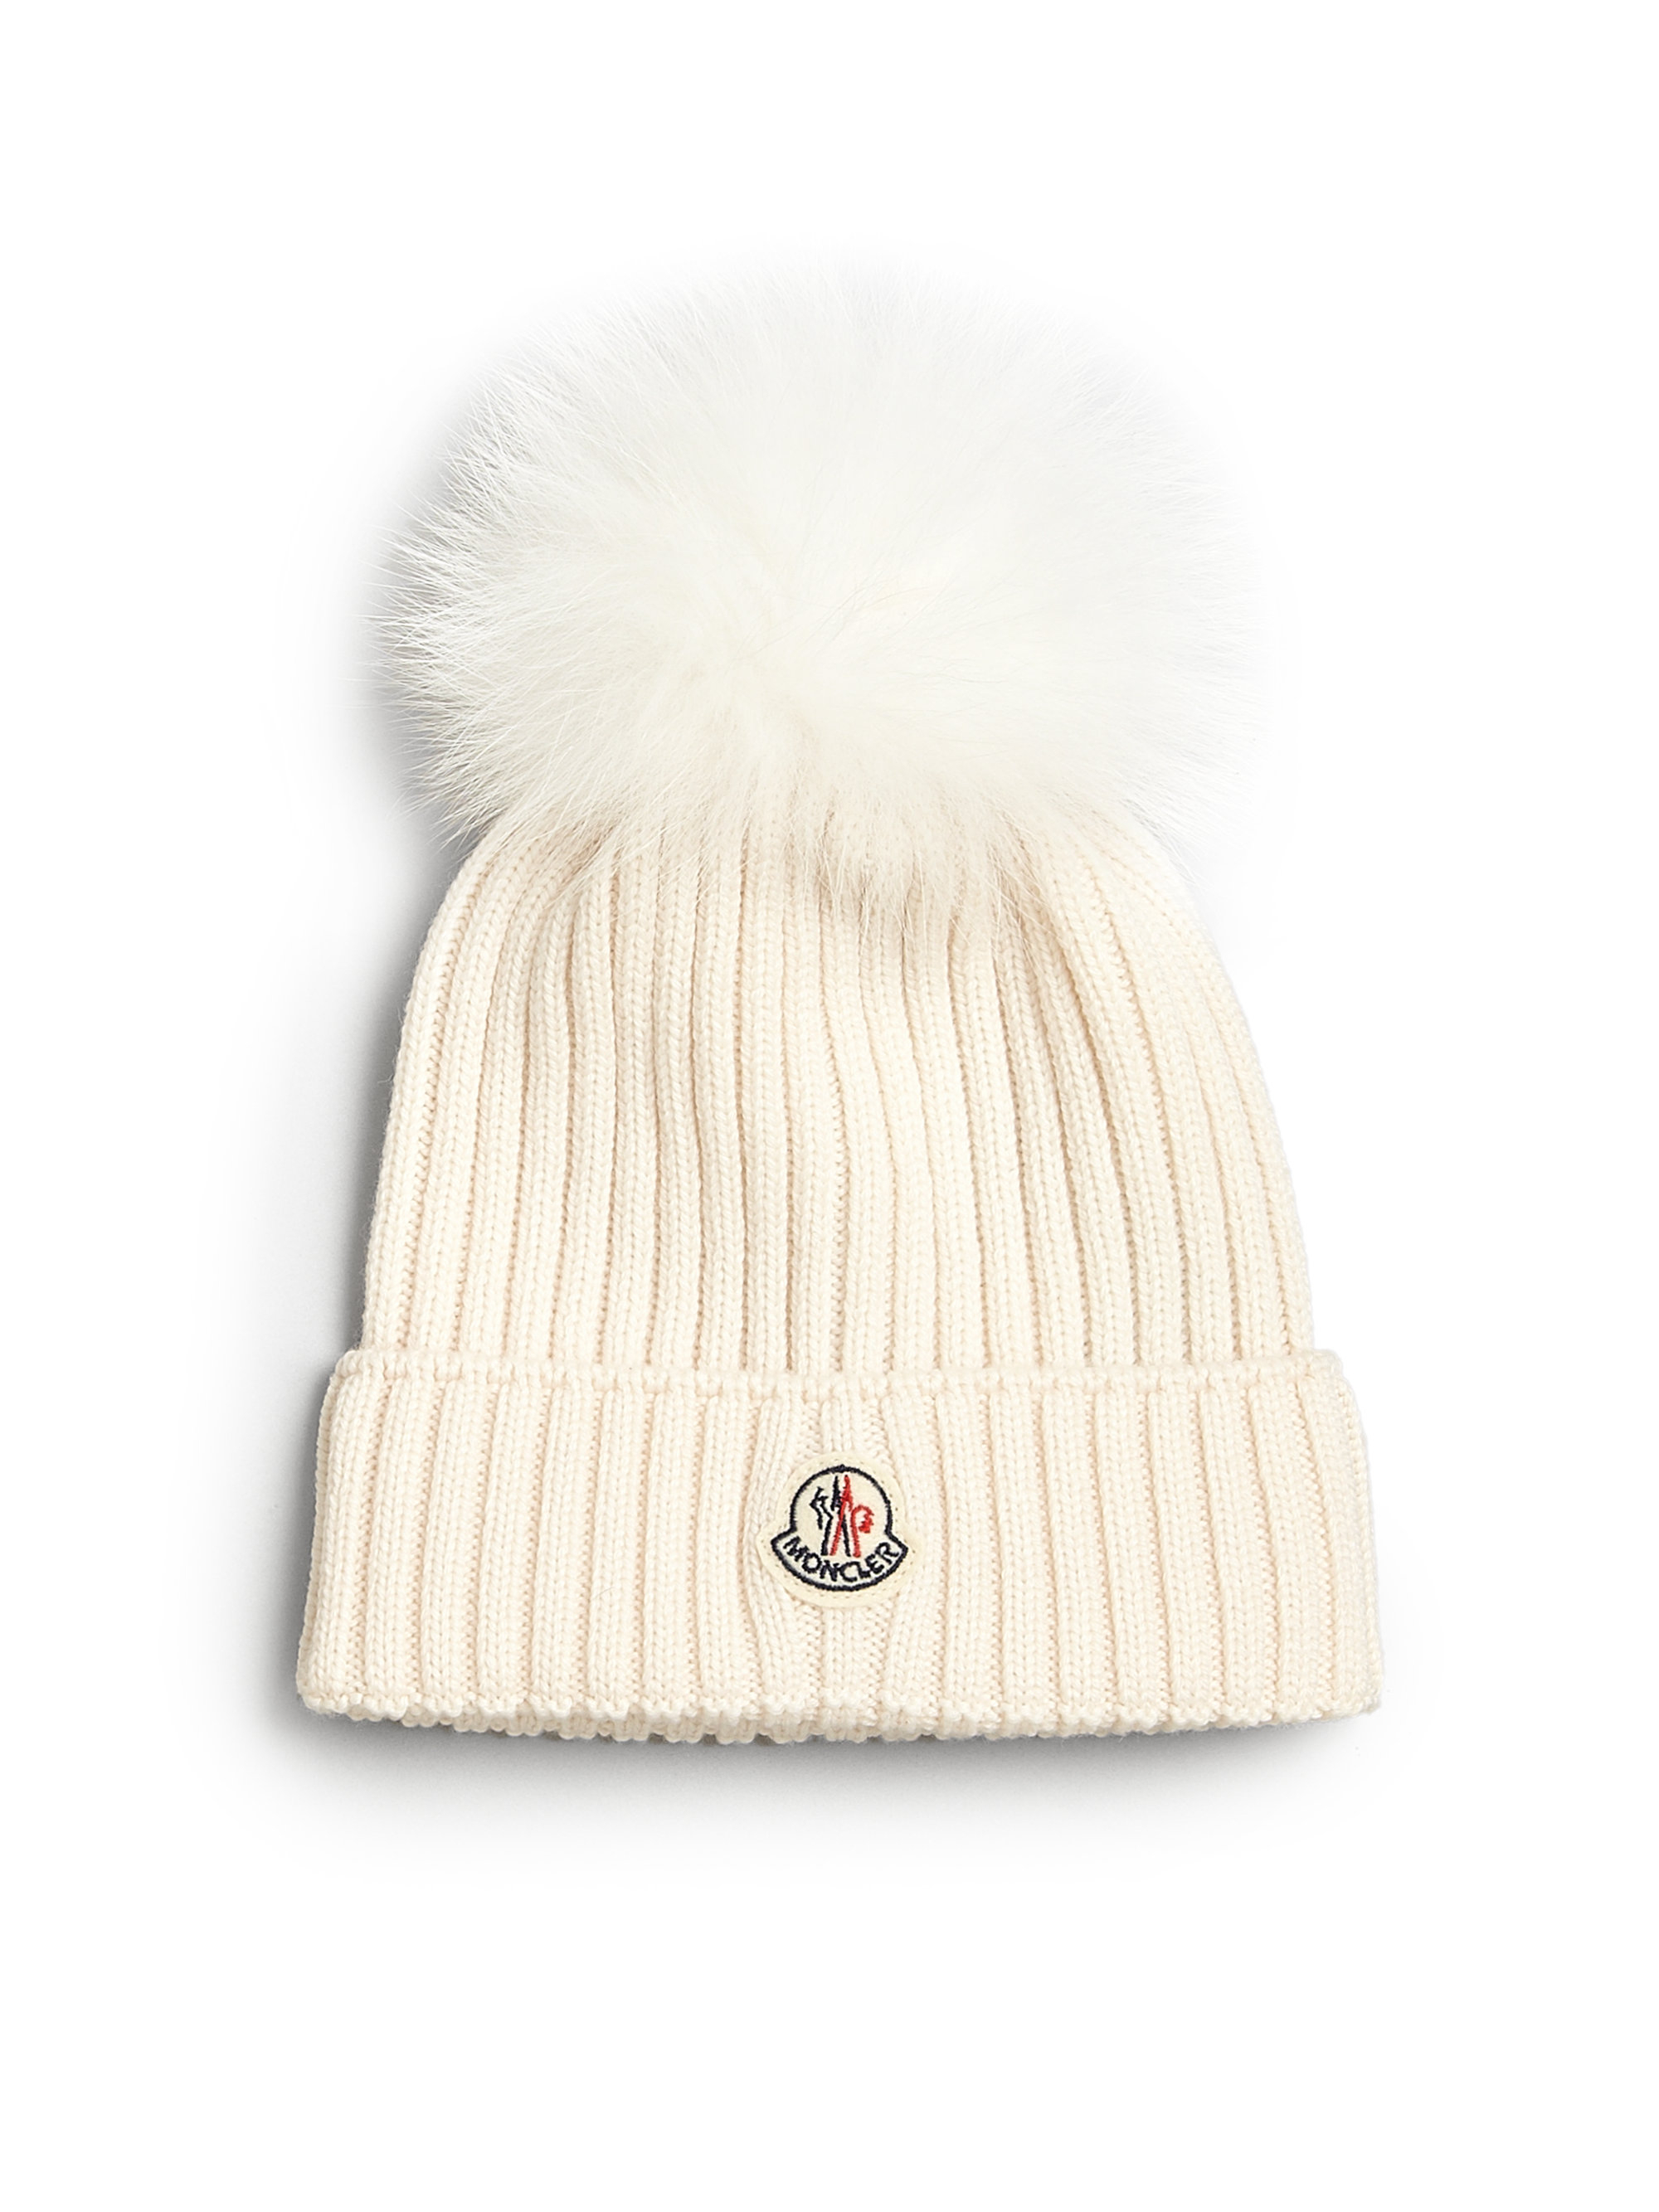 Lyst - Moncler Toddlers Little Girls Fur-trimmed Wool Hat in Natural 7a9781a7d4a